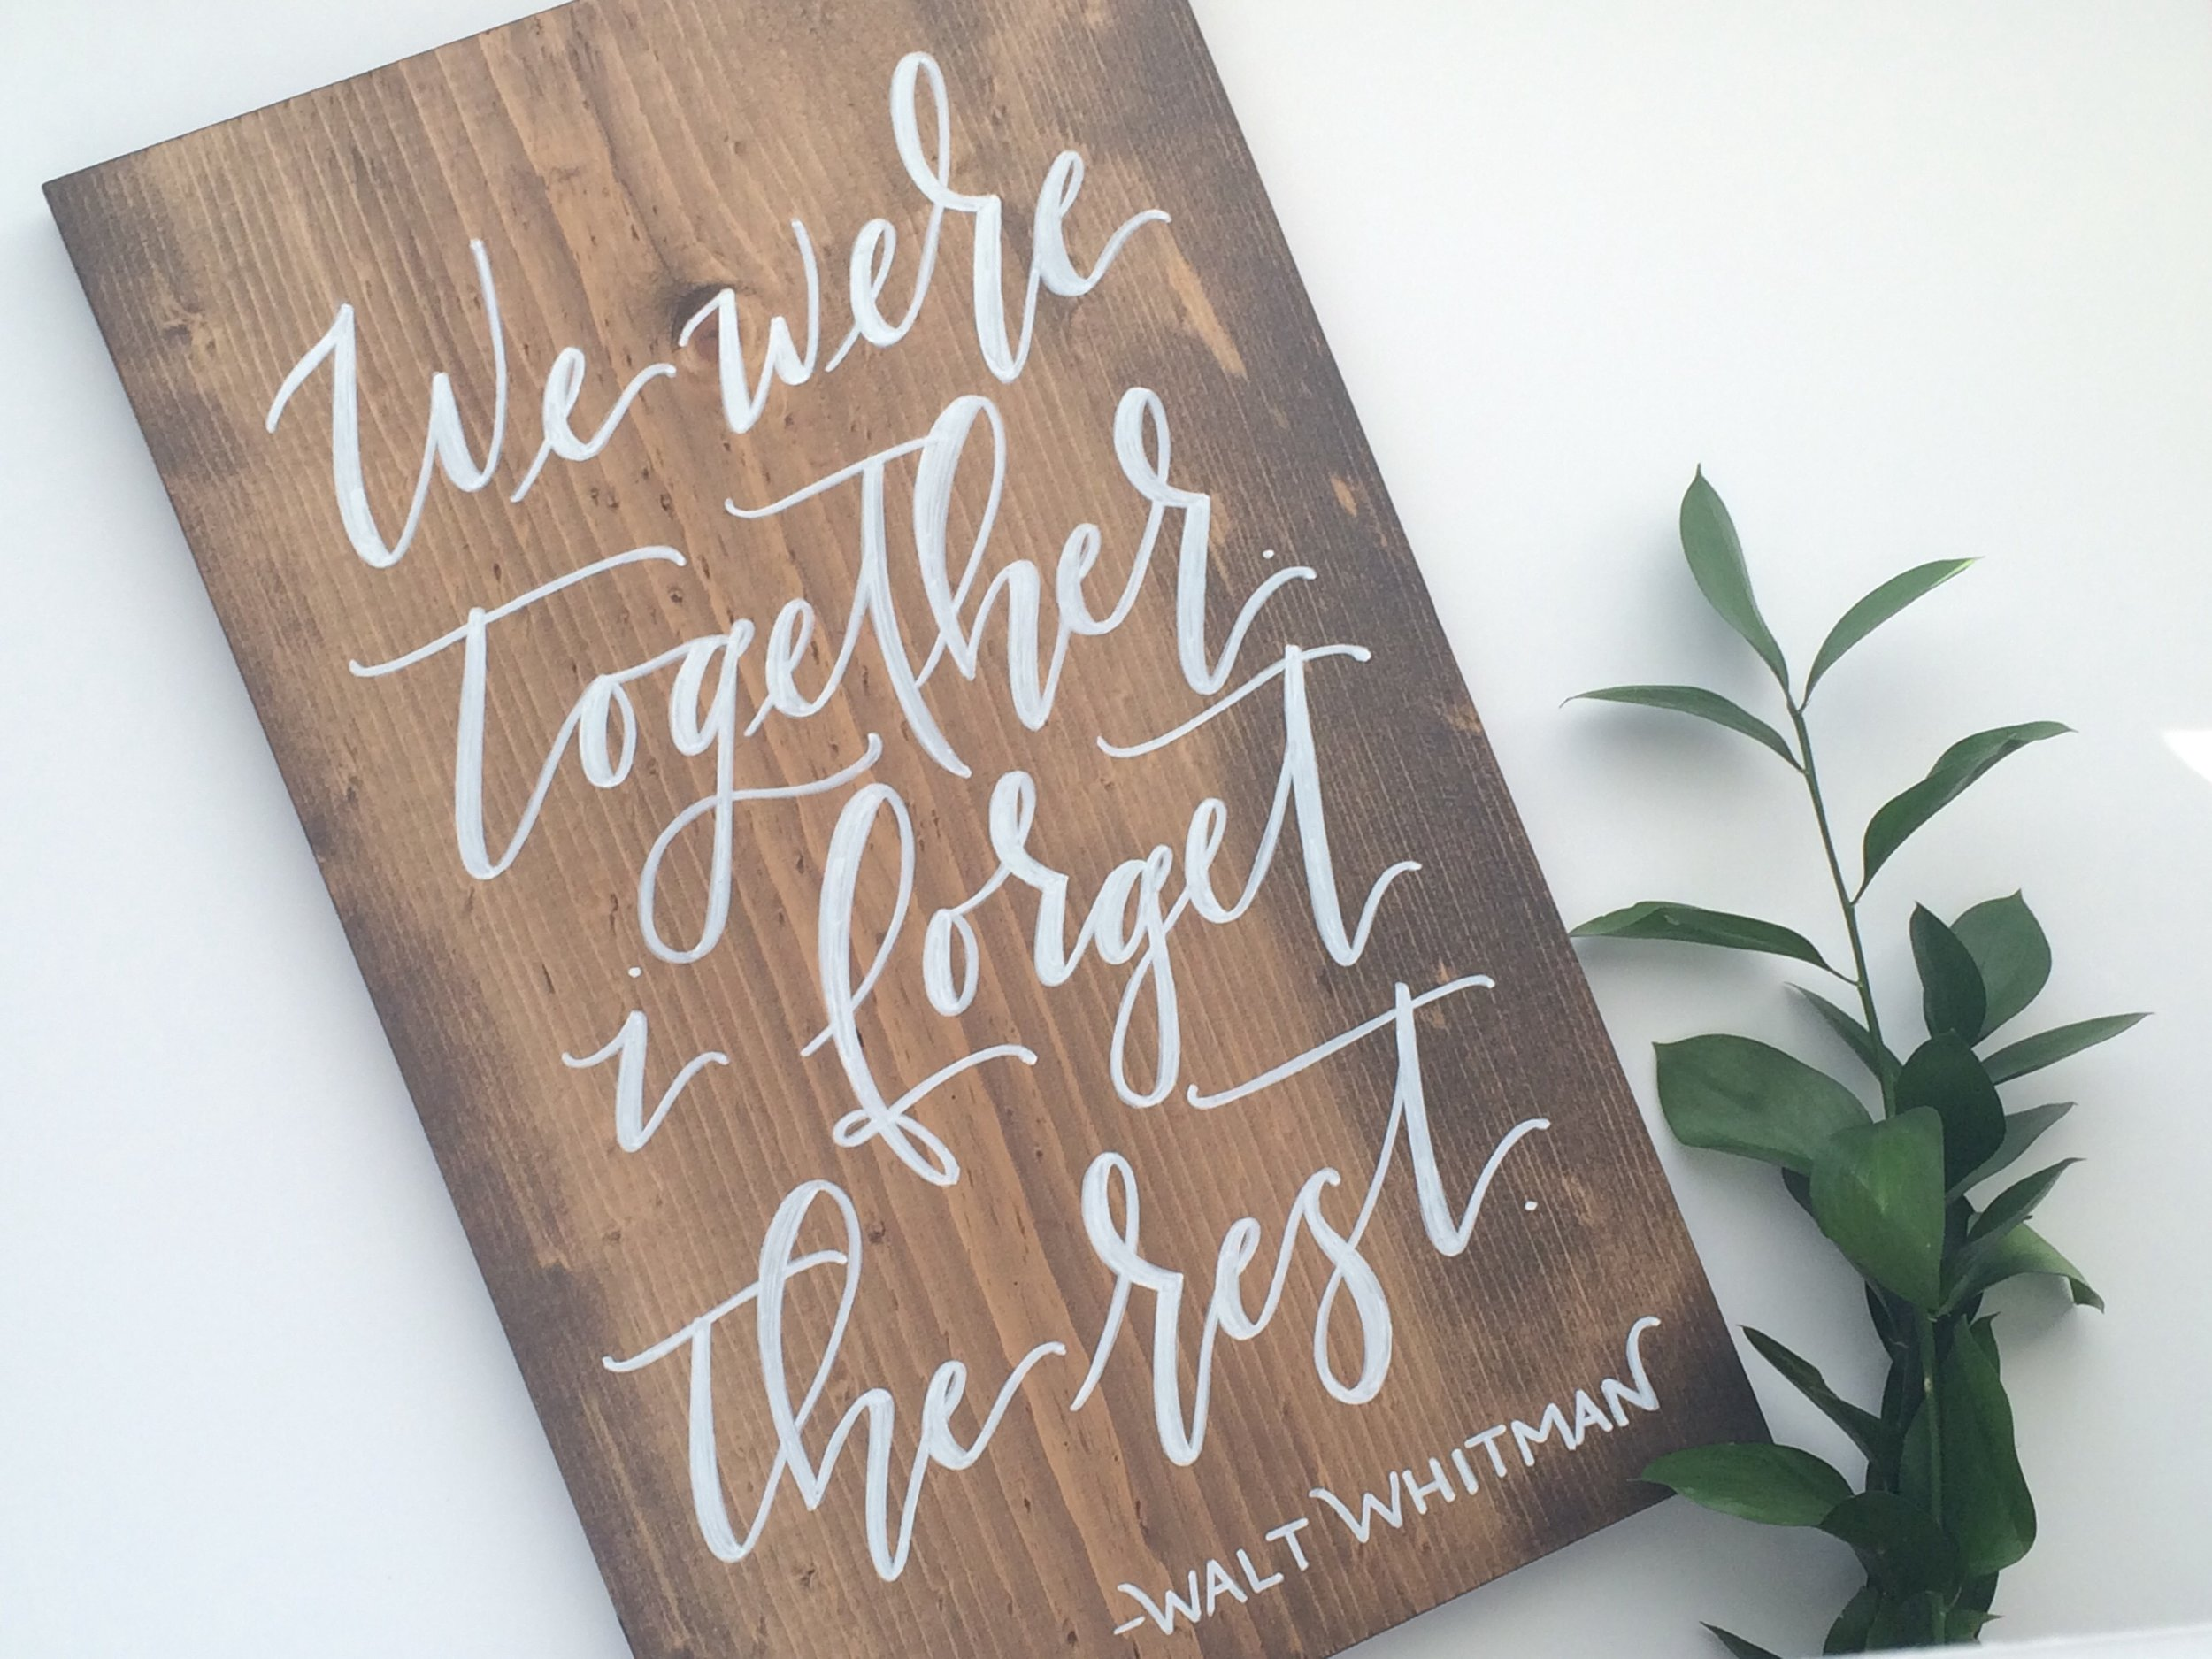 Shop my custom signage for your wedding day or home decor